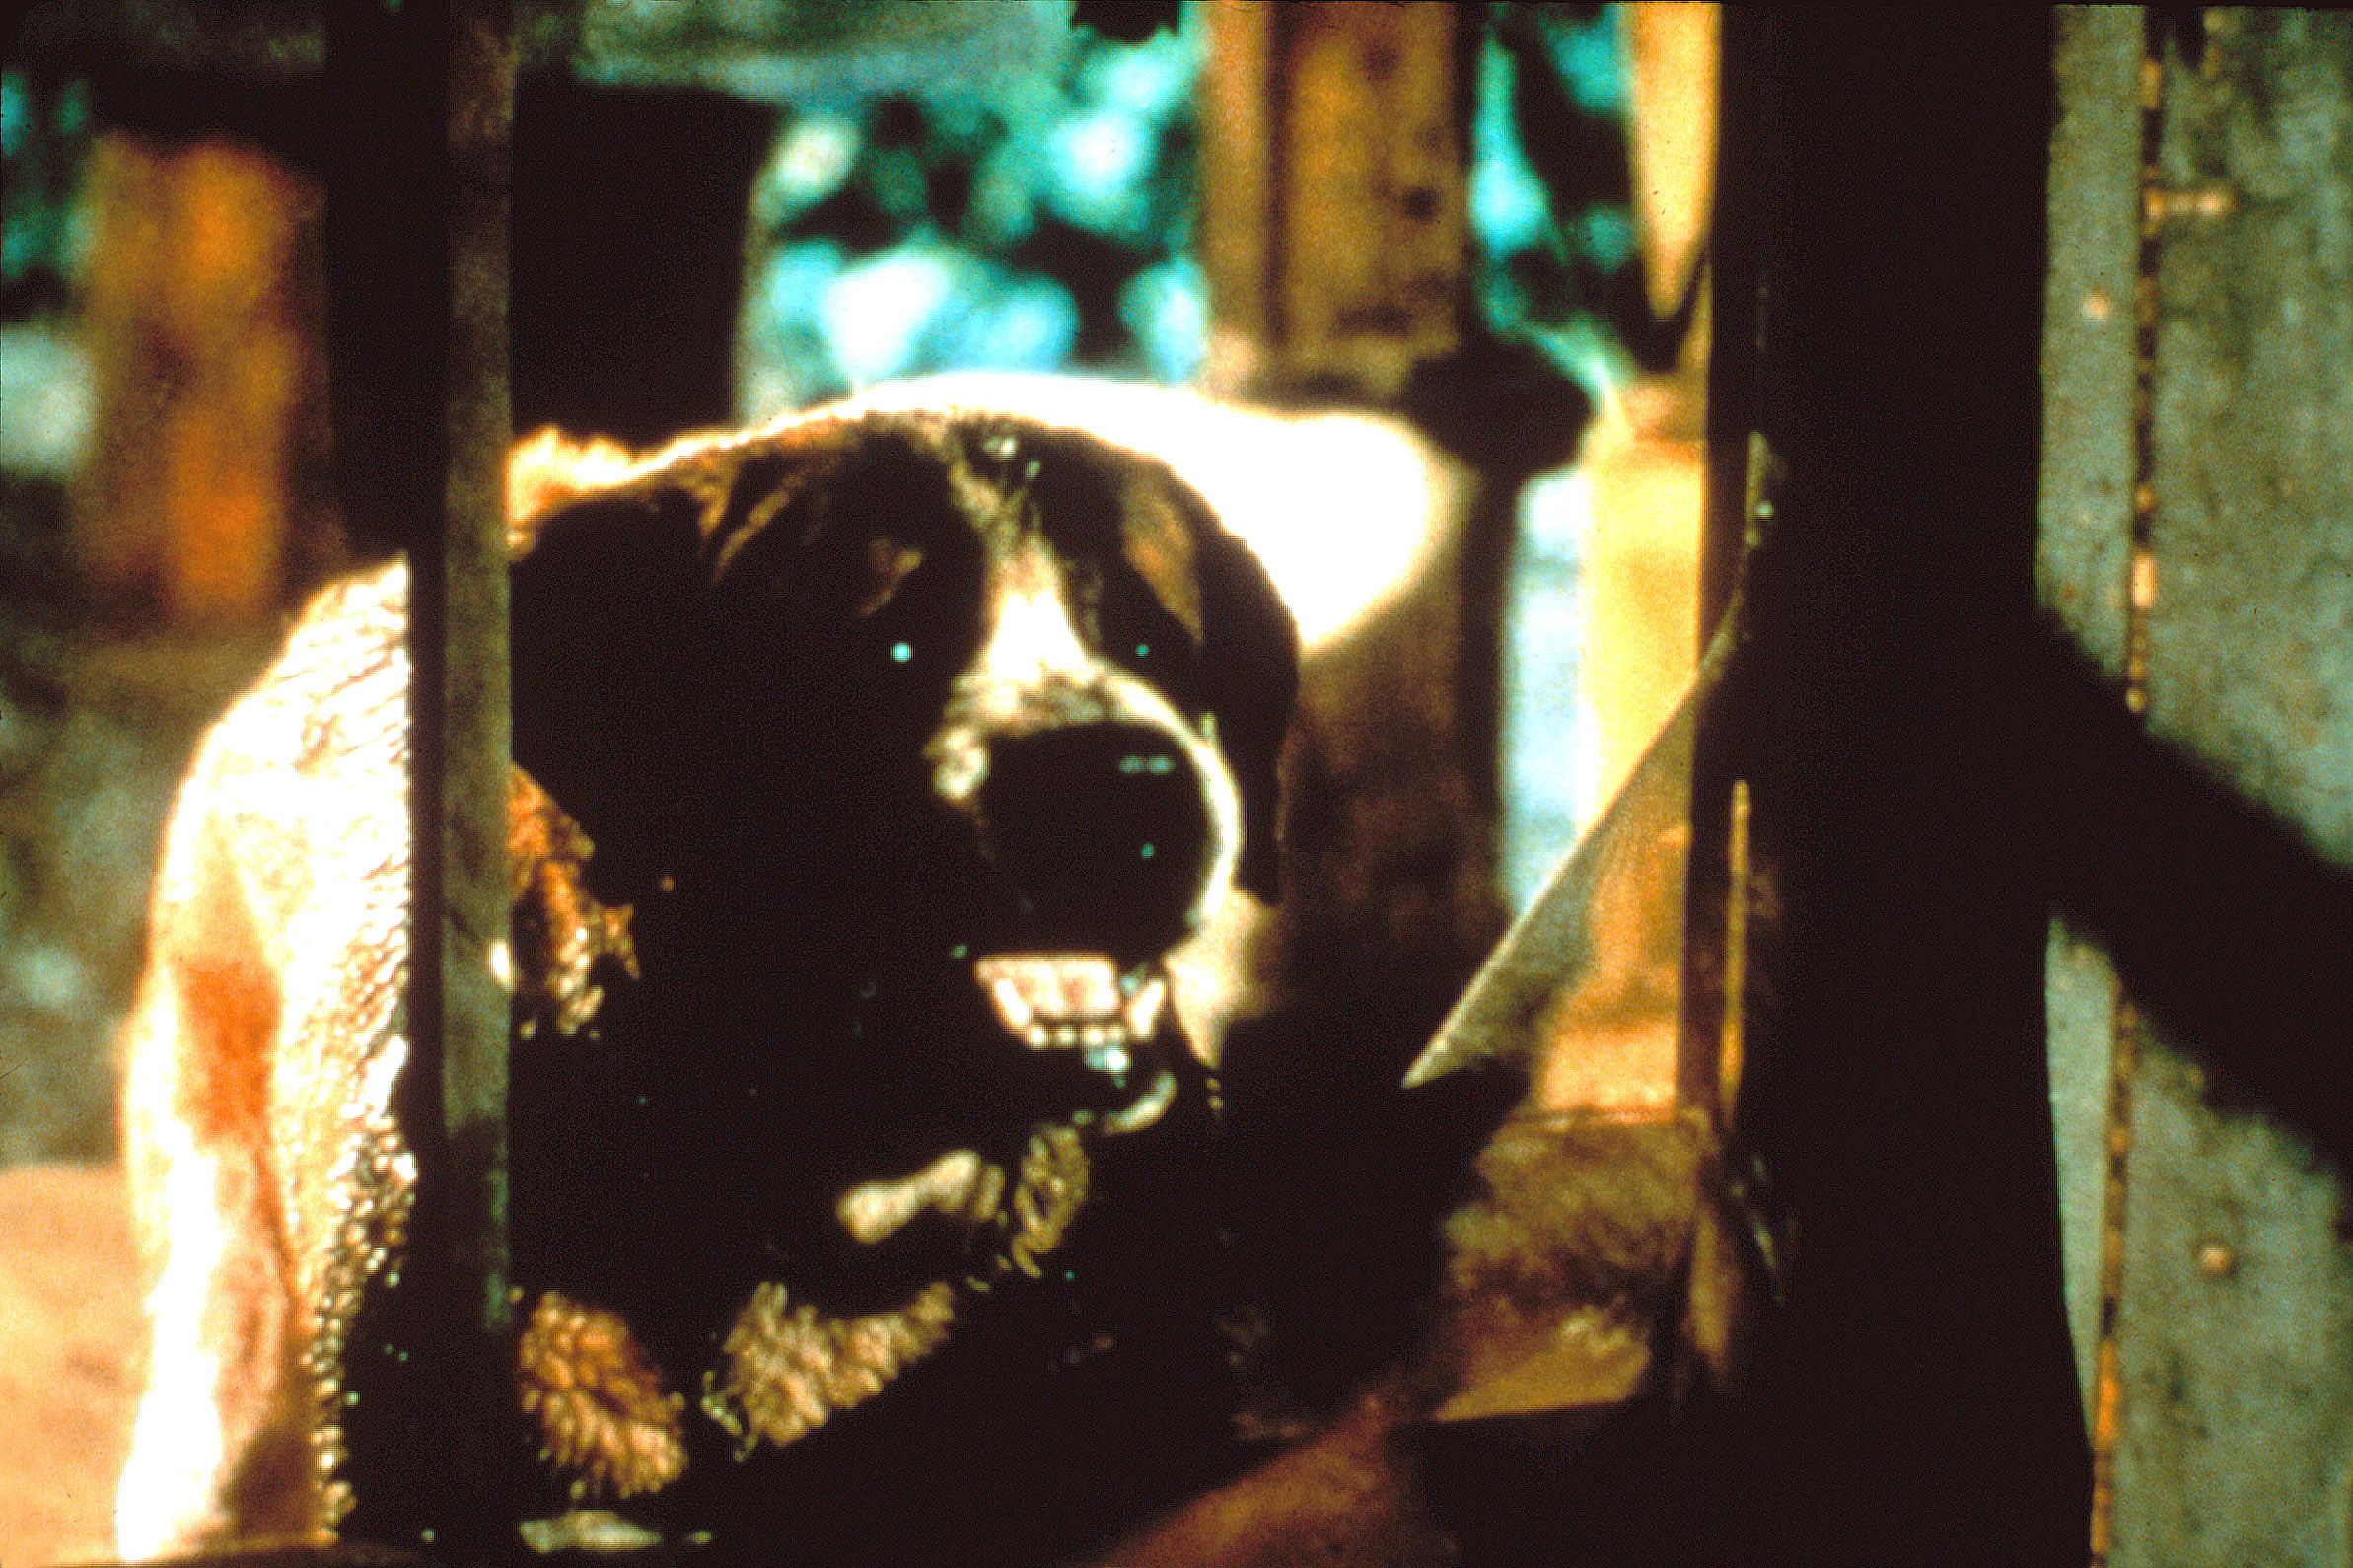 Cujo baring his teeth in the film